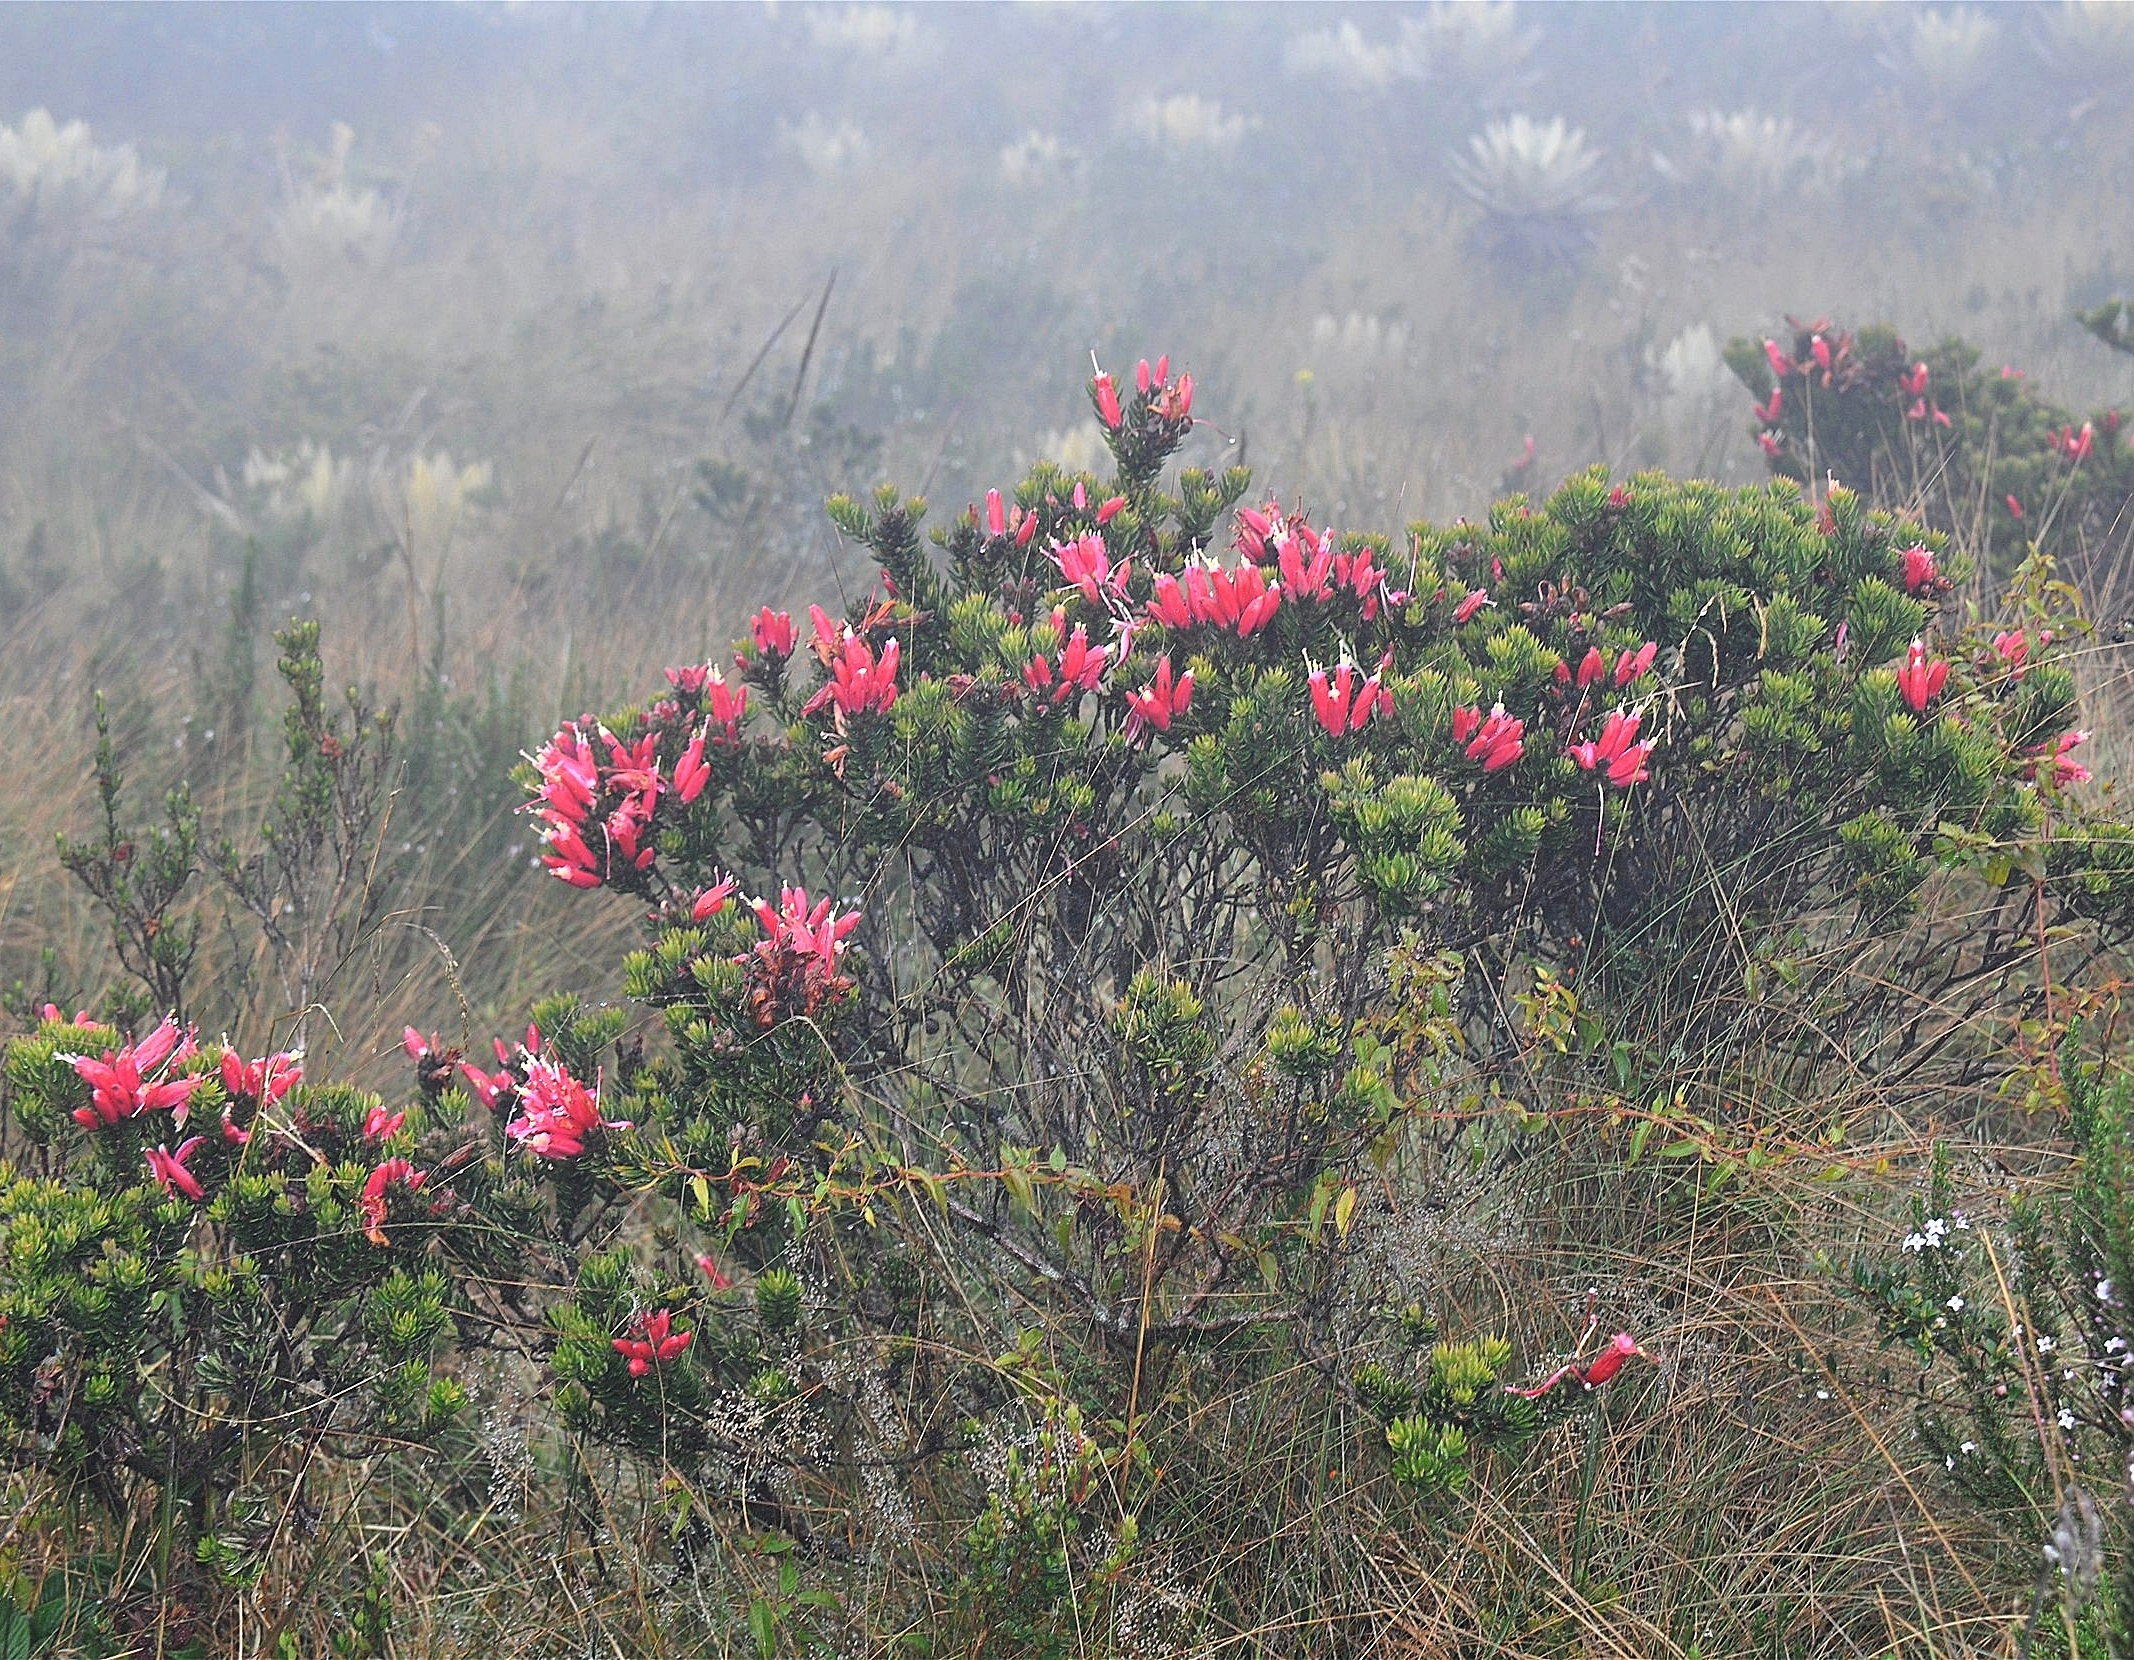 Bejaria resinosa  flowering in misty páramo near Bogotá, Colombia with frailejones ( Espeletia sp. ) ghosting in the background (Image: P. Rockstroh).